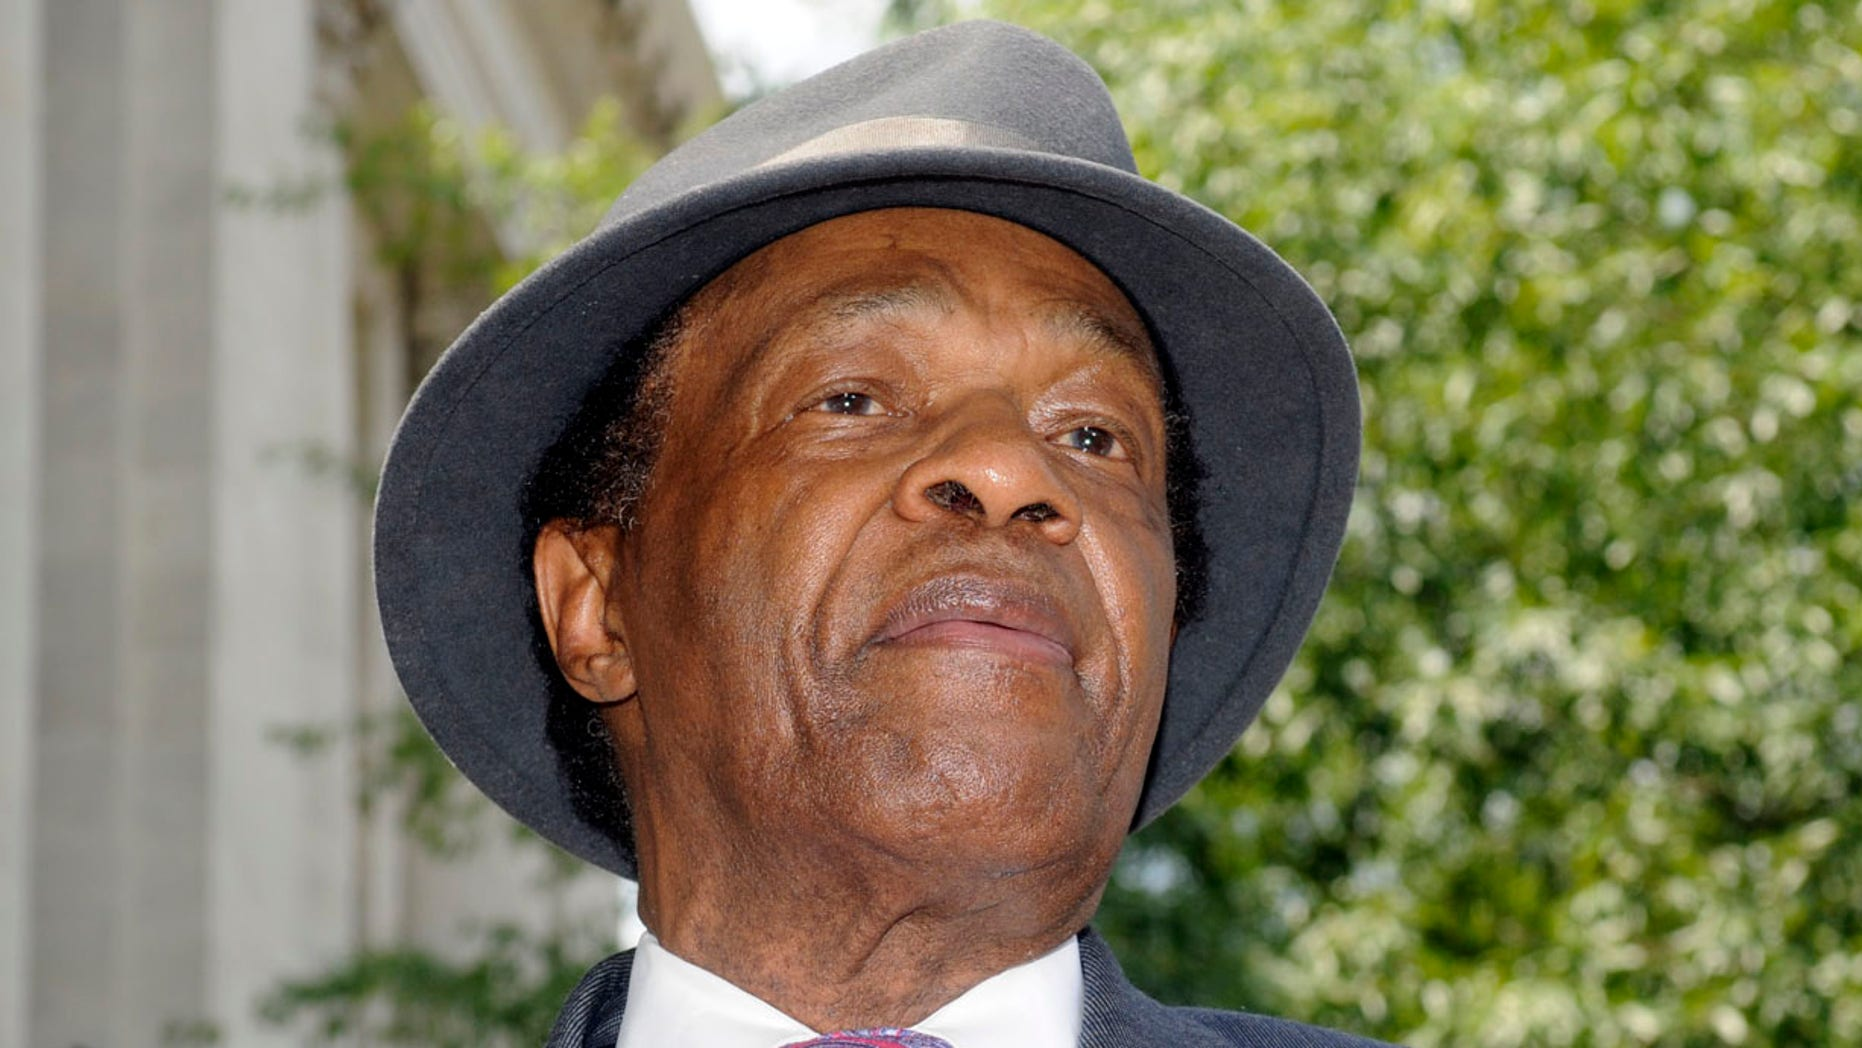 July 9, 2009: Marion Barry, former mayor of DC, speaks at a news conference.